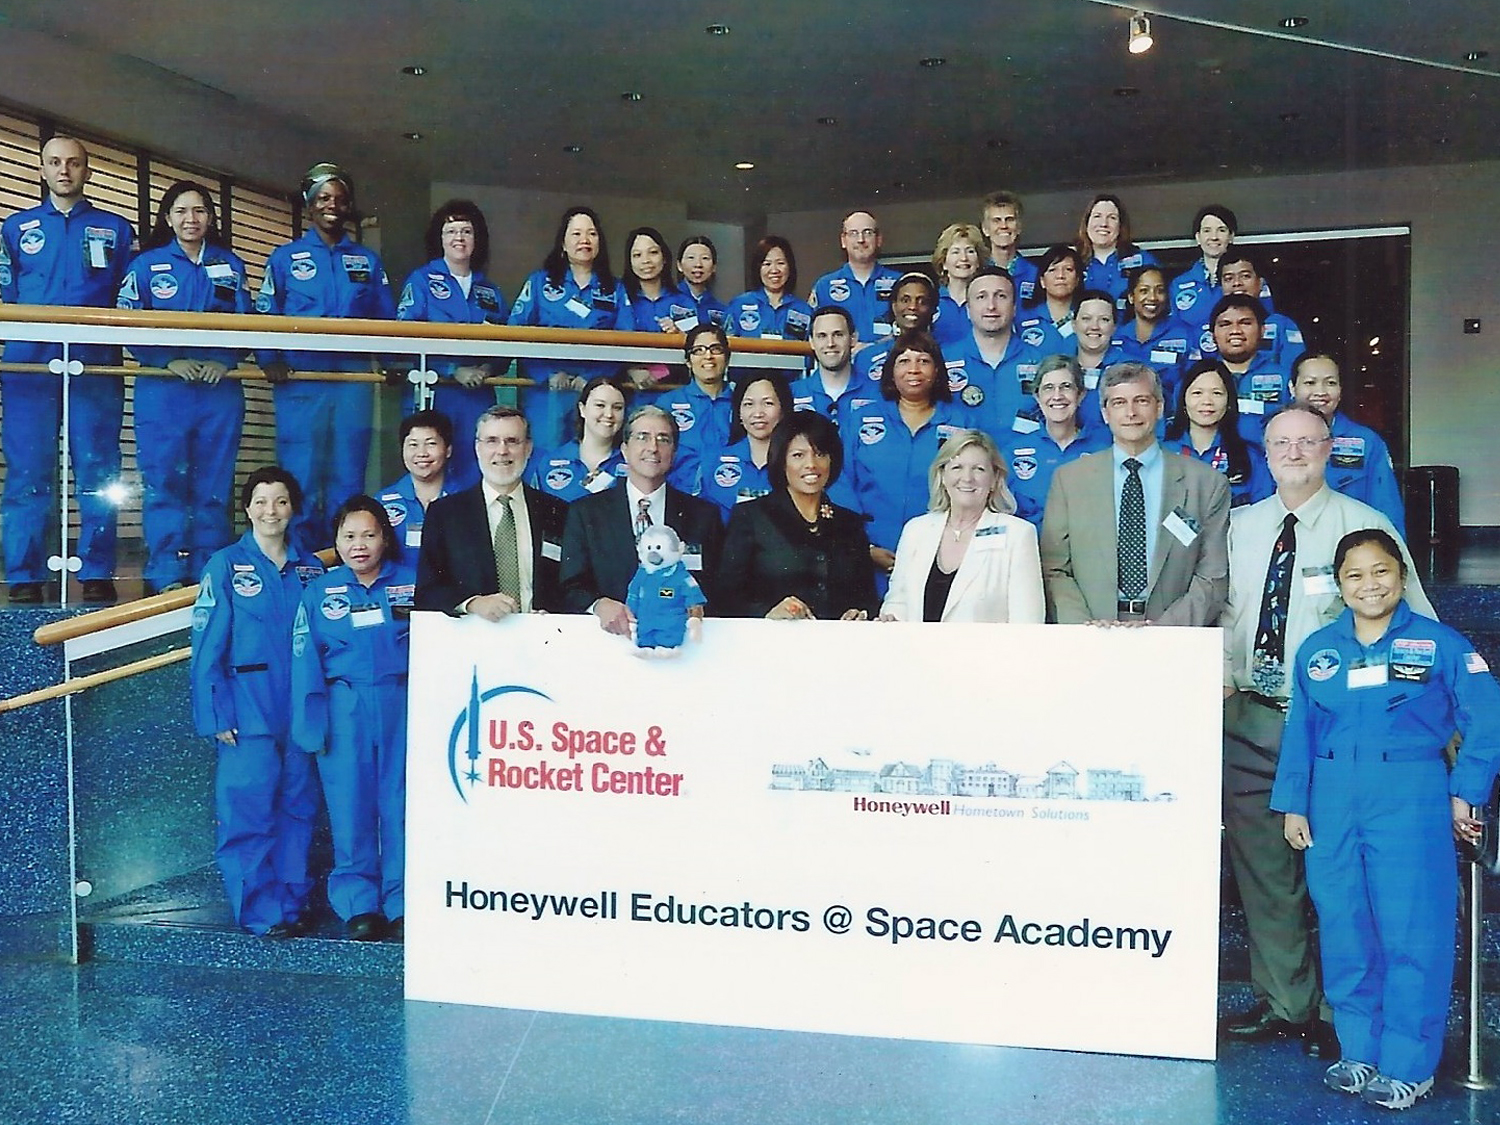 Meeting teachers participating in Honeywell's Educators @ Space Academy program.